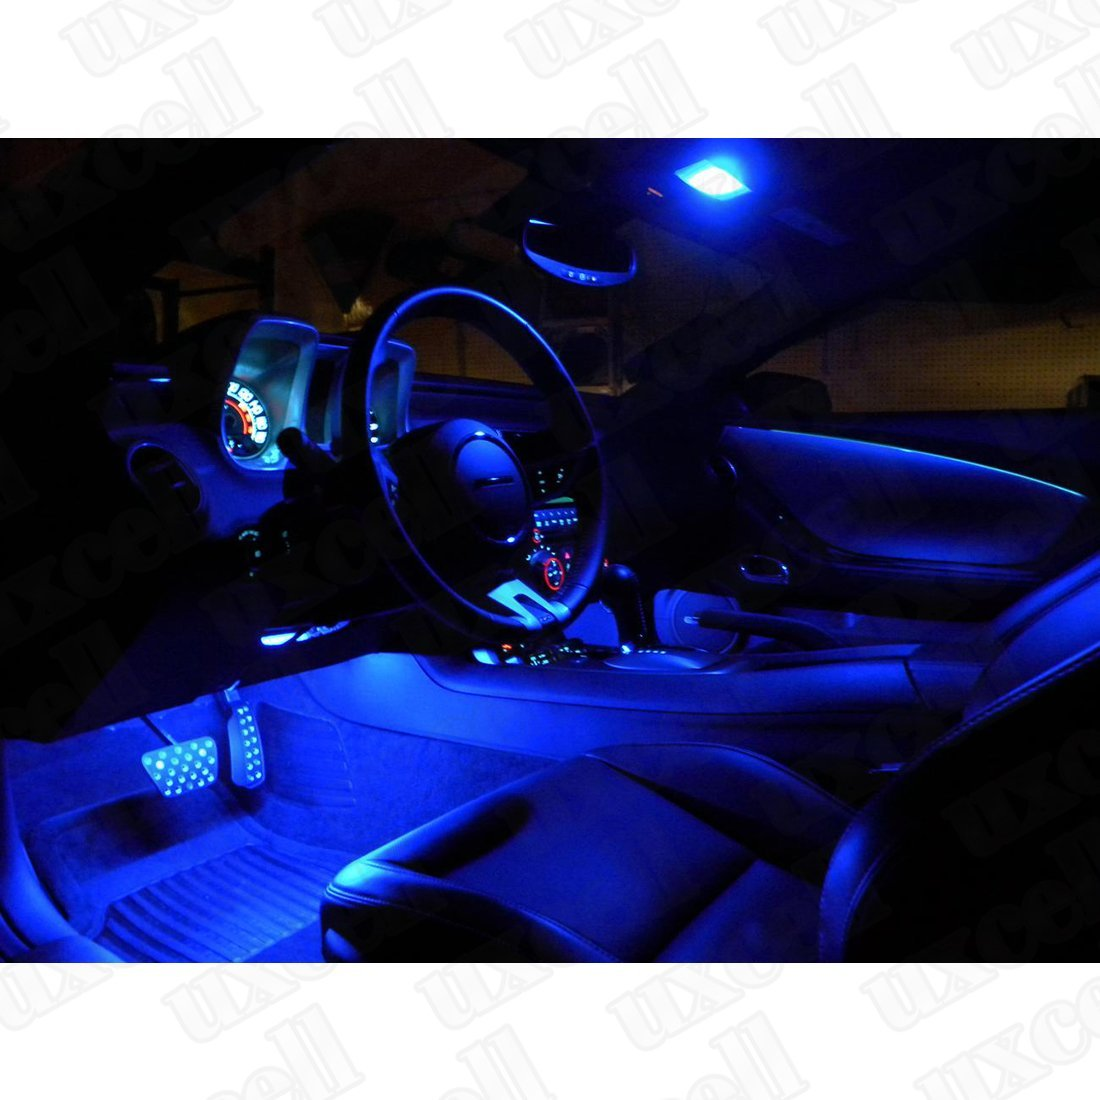 Amazon.com: eDealMax 10x 41 mm 8-LED SMD 3528 Azul Adorno de la bóveda Interior Mapa Luz 569 560: Automotive